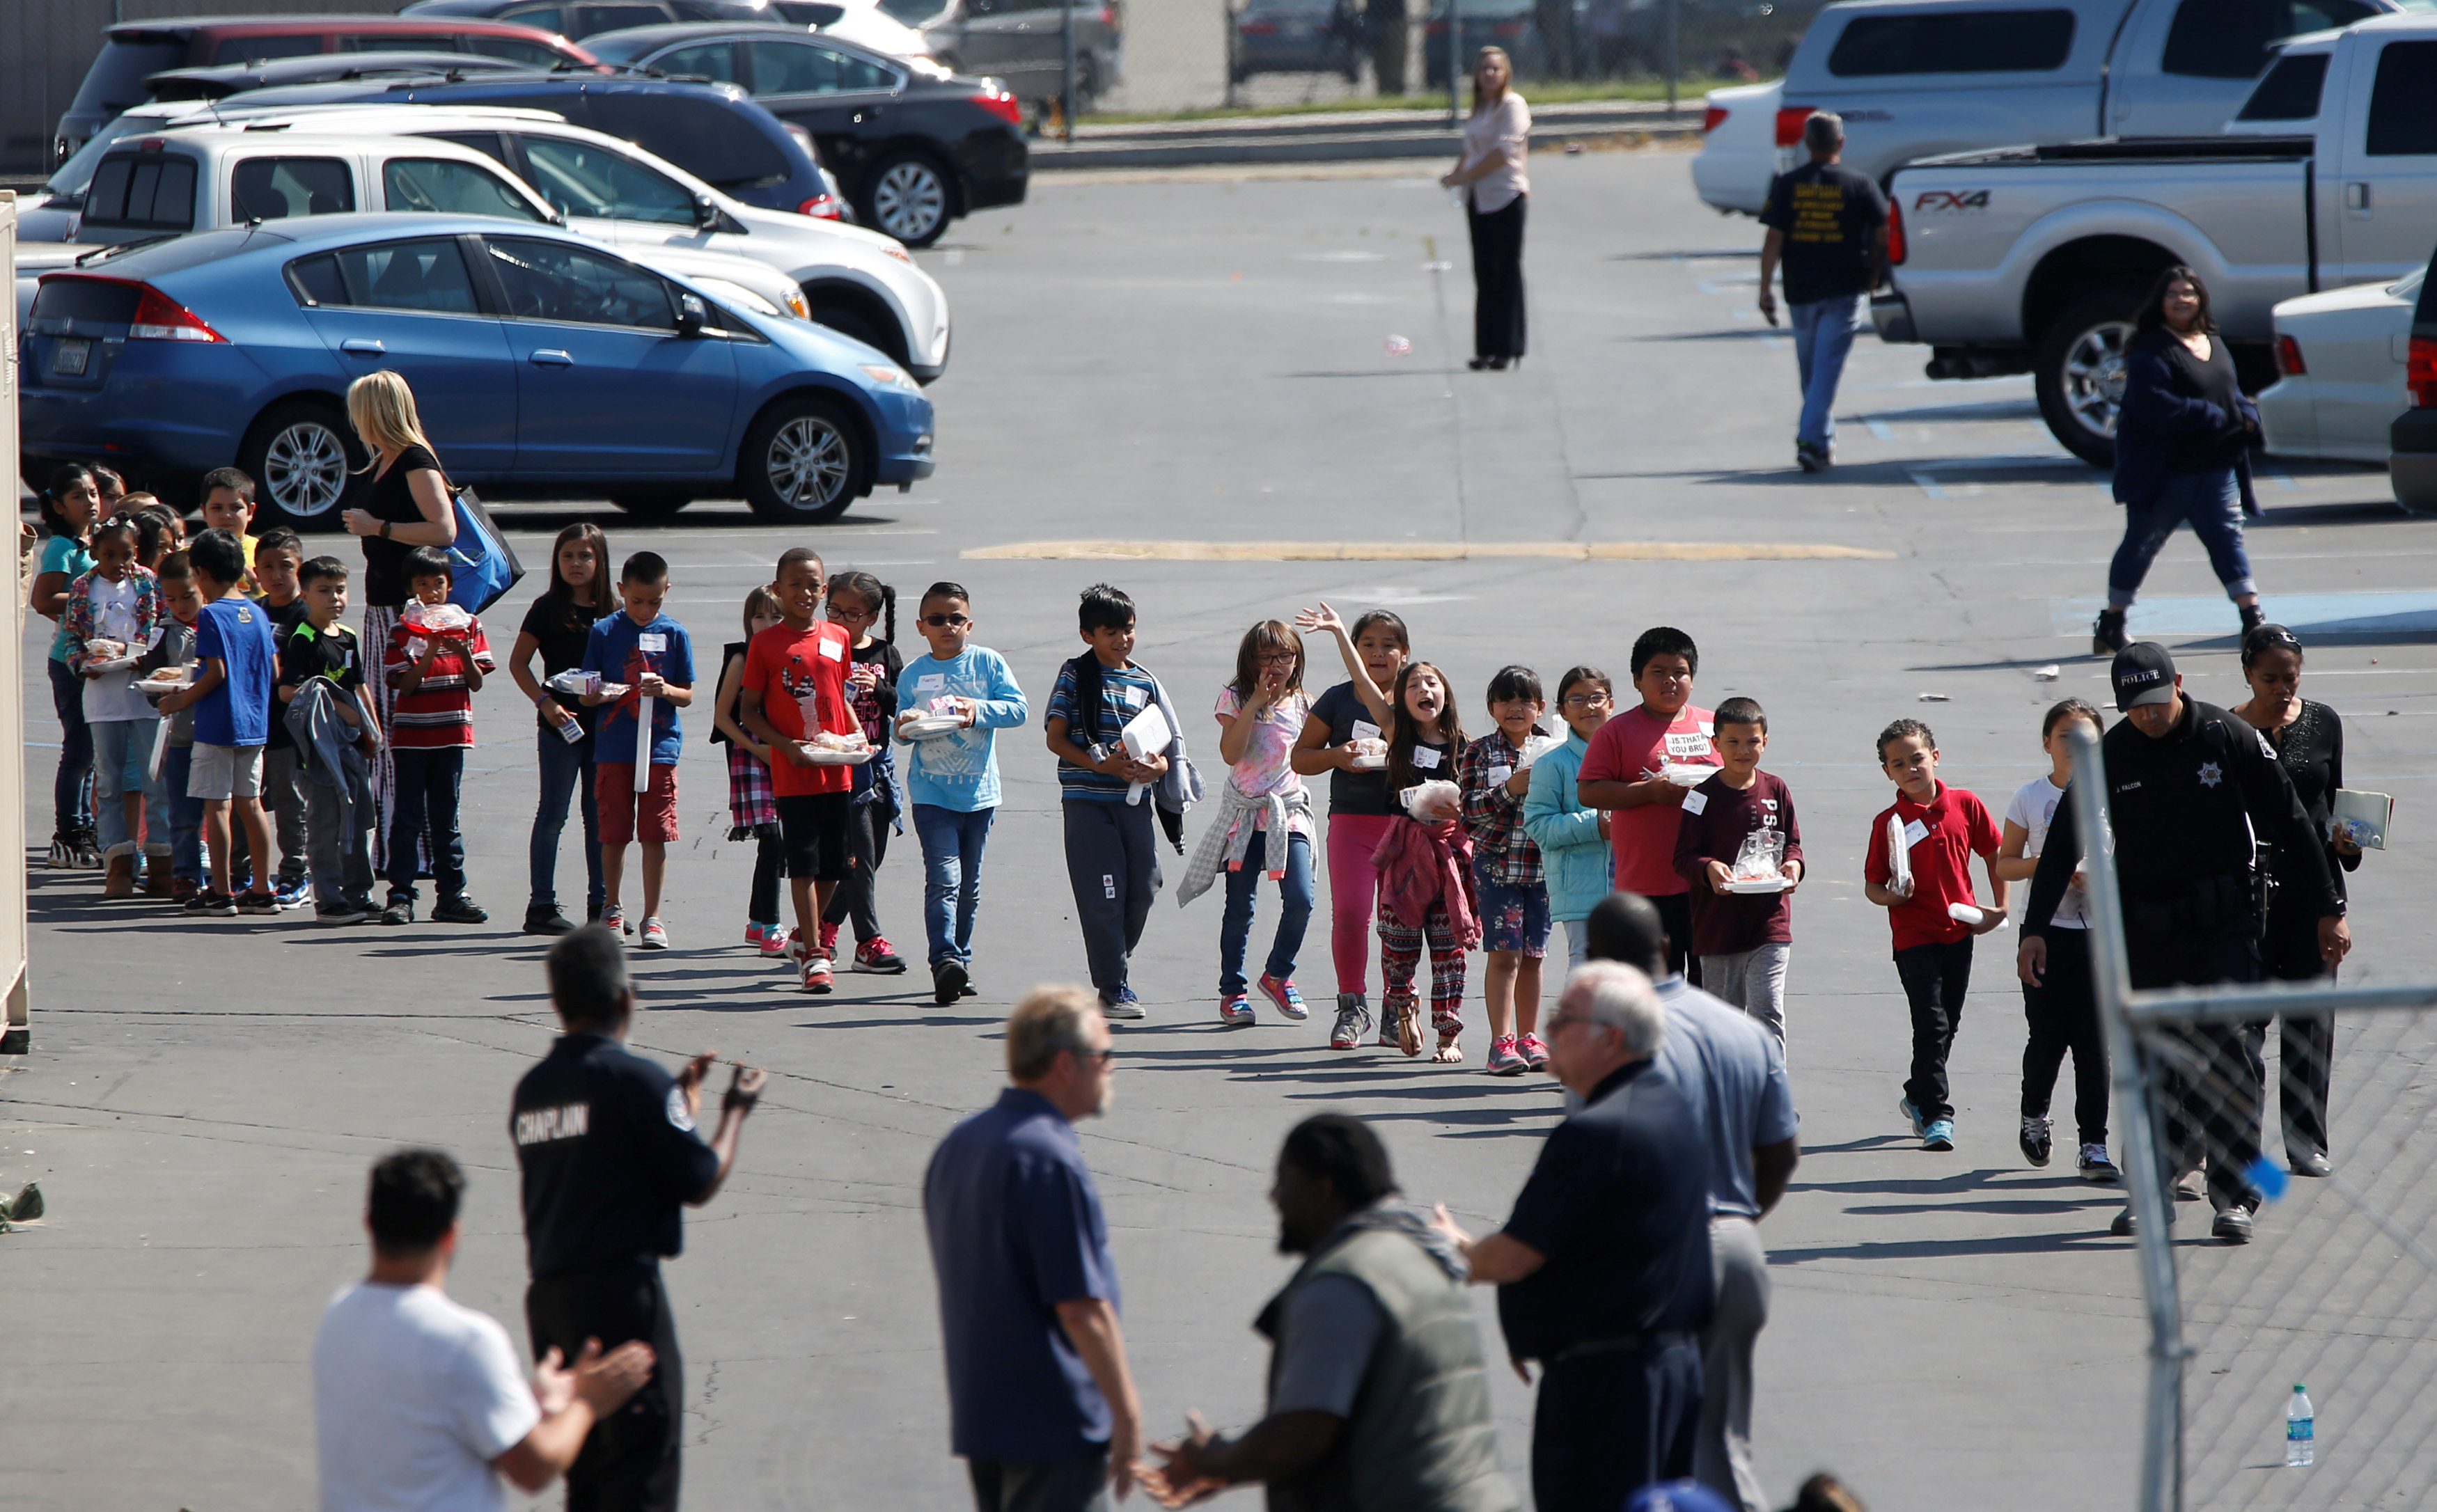 Students who were evacuated after a shooting at North Park Elementary School walk past well-wishers to be reunited with their waiting parents at a high school in San Bernardino, Calif., on April 10, 2017. (REUTERS/Mario Anzuoni)